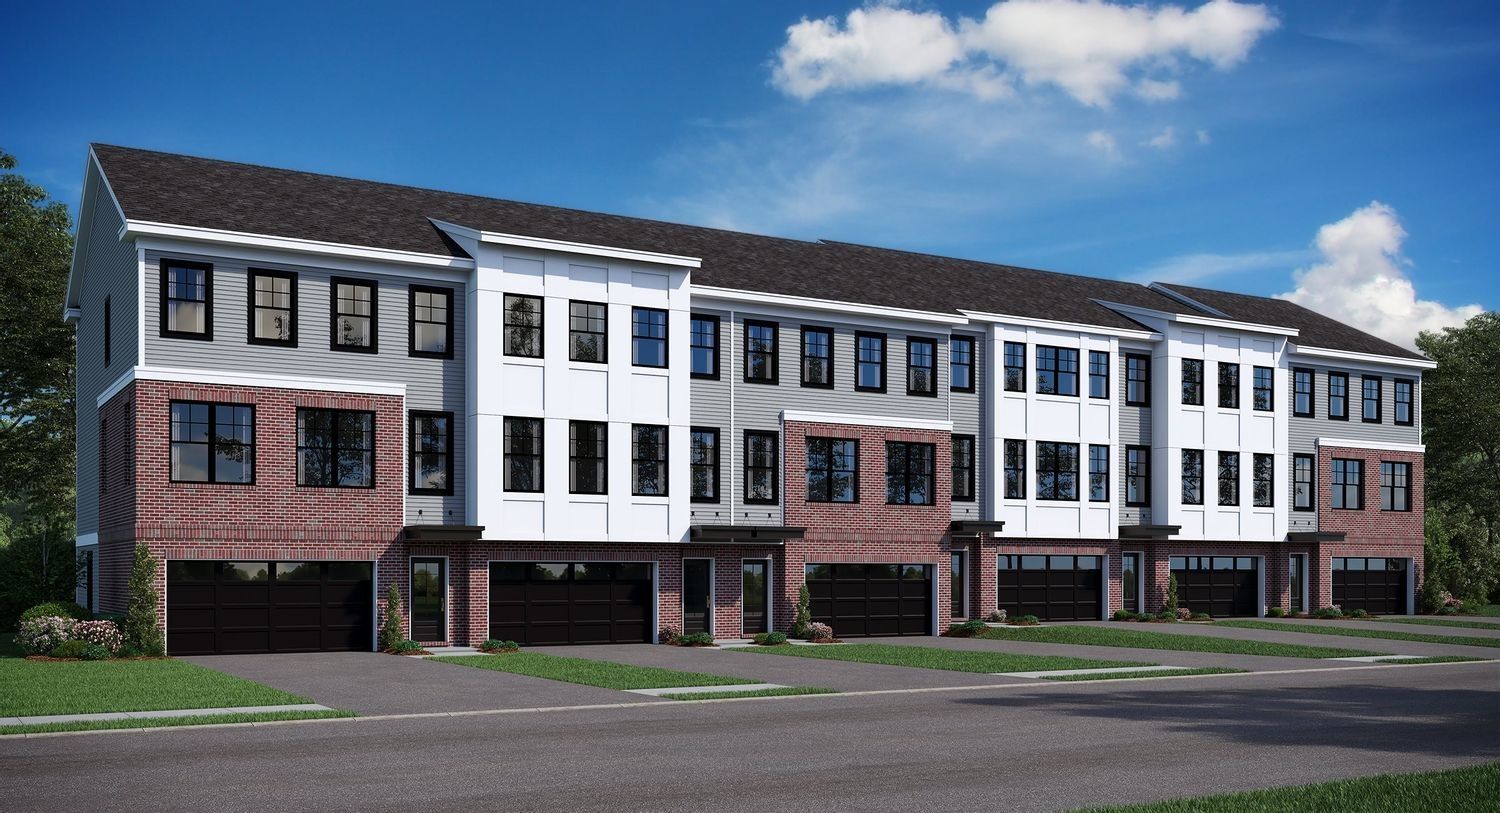 Ready To Build Home In Patriots Square by LENNAR - Patriot Square 3-Story Townhomes Community